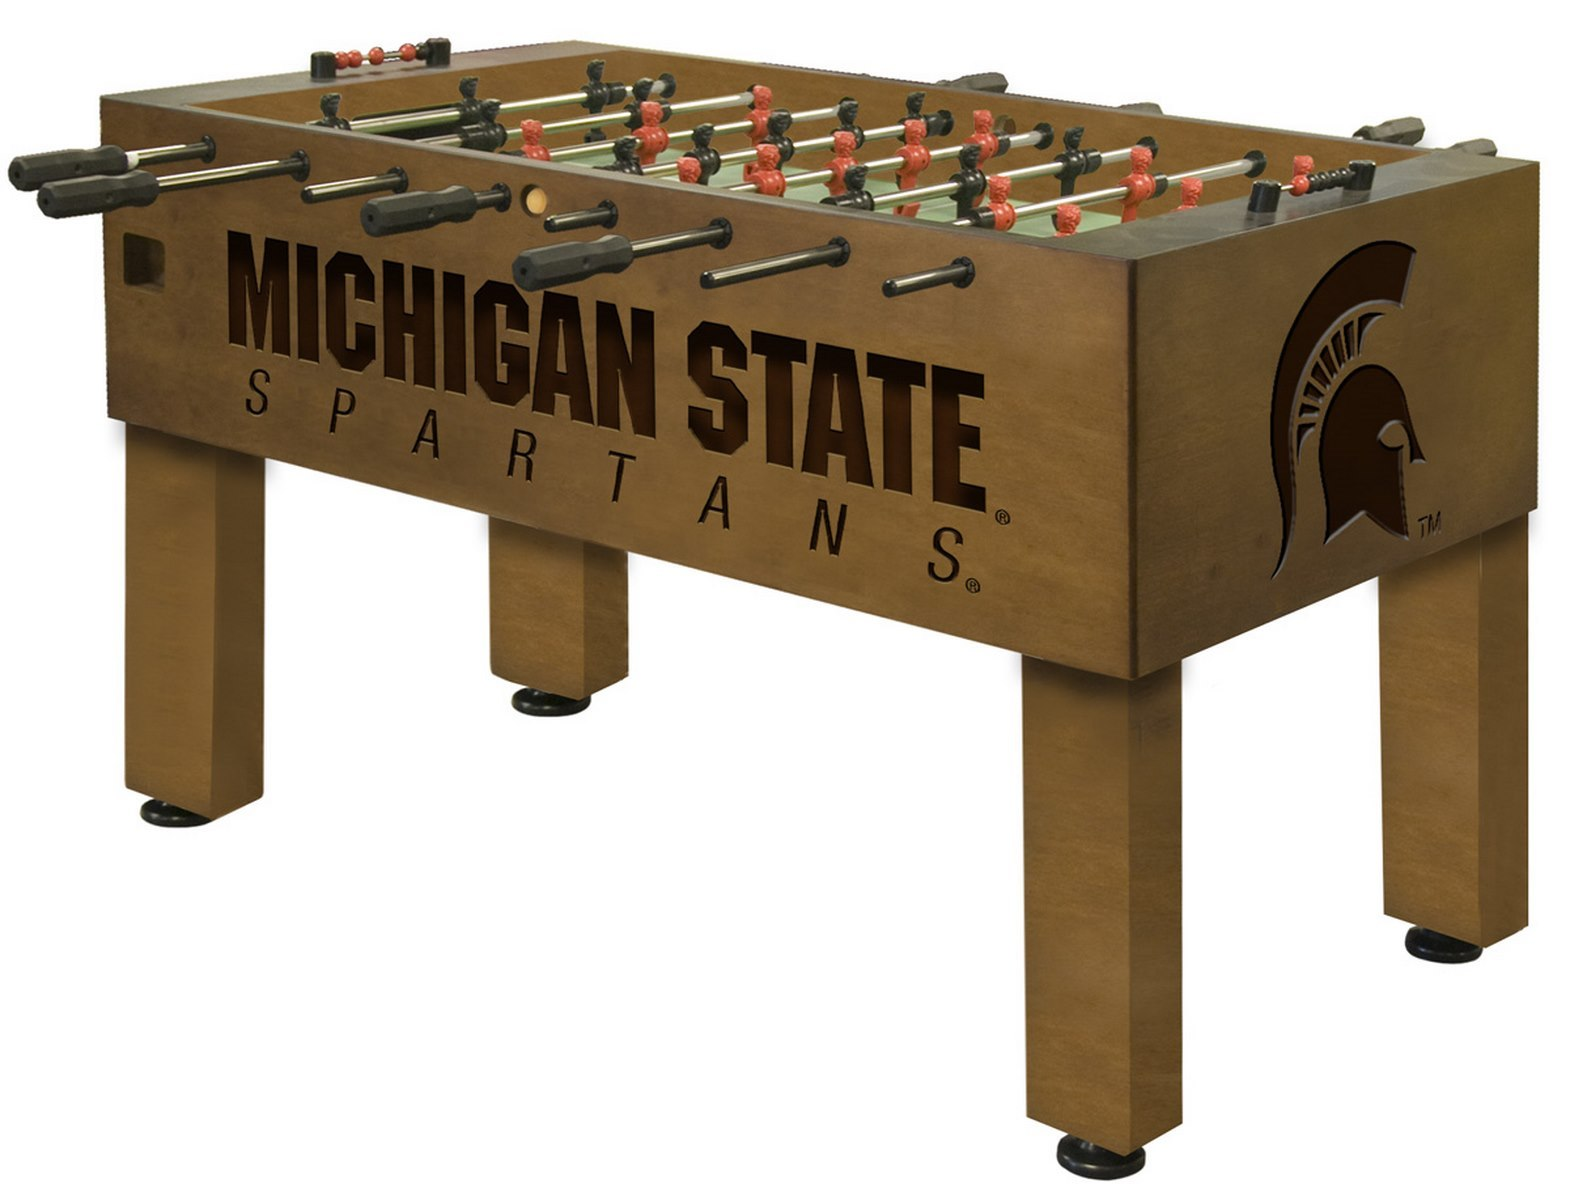 Michigan State University Foosball 100 made in USA : Michigan State University Foosball from www.diamondbackbilliards.com size 1570 x 1200 jpeg 159kB